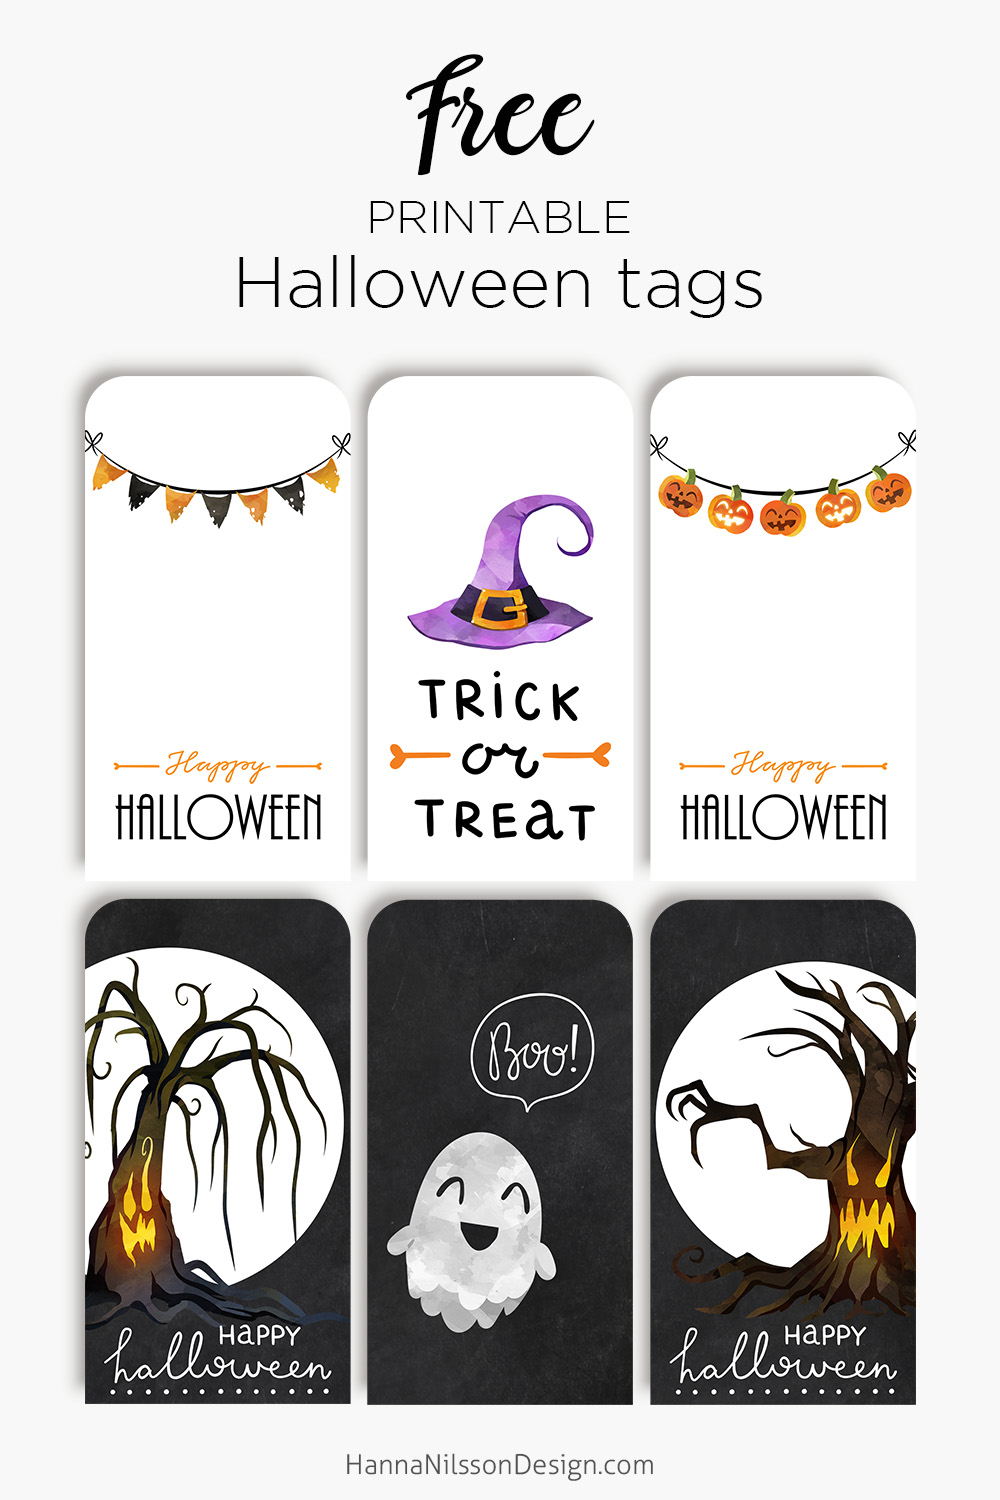 photograph about Happy Halloween Printable titled Content Halloween tags Totally free printable creepy lovable